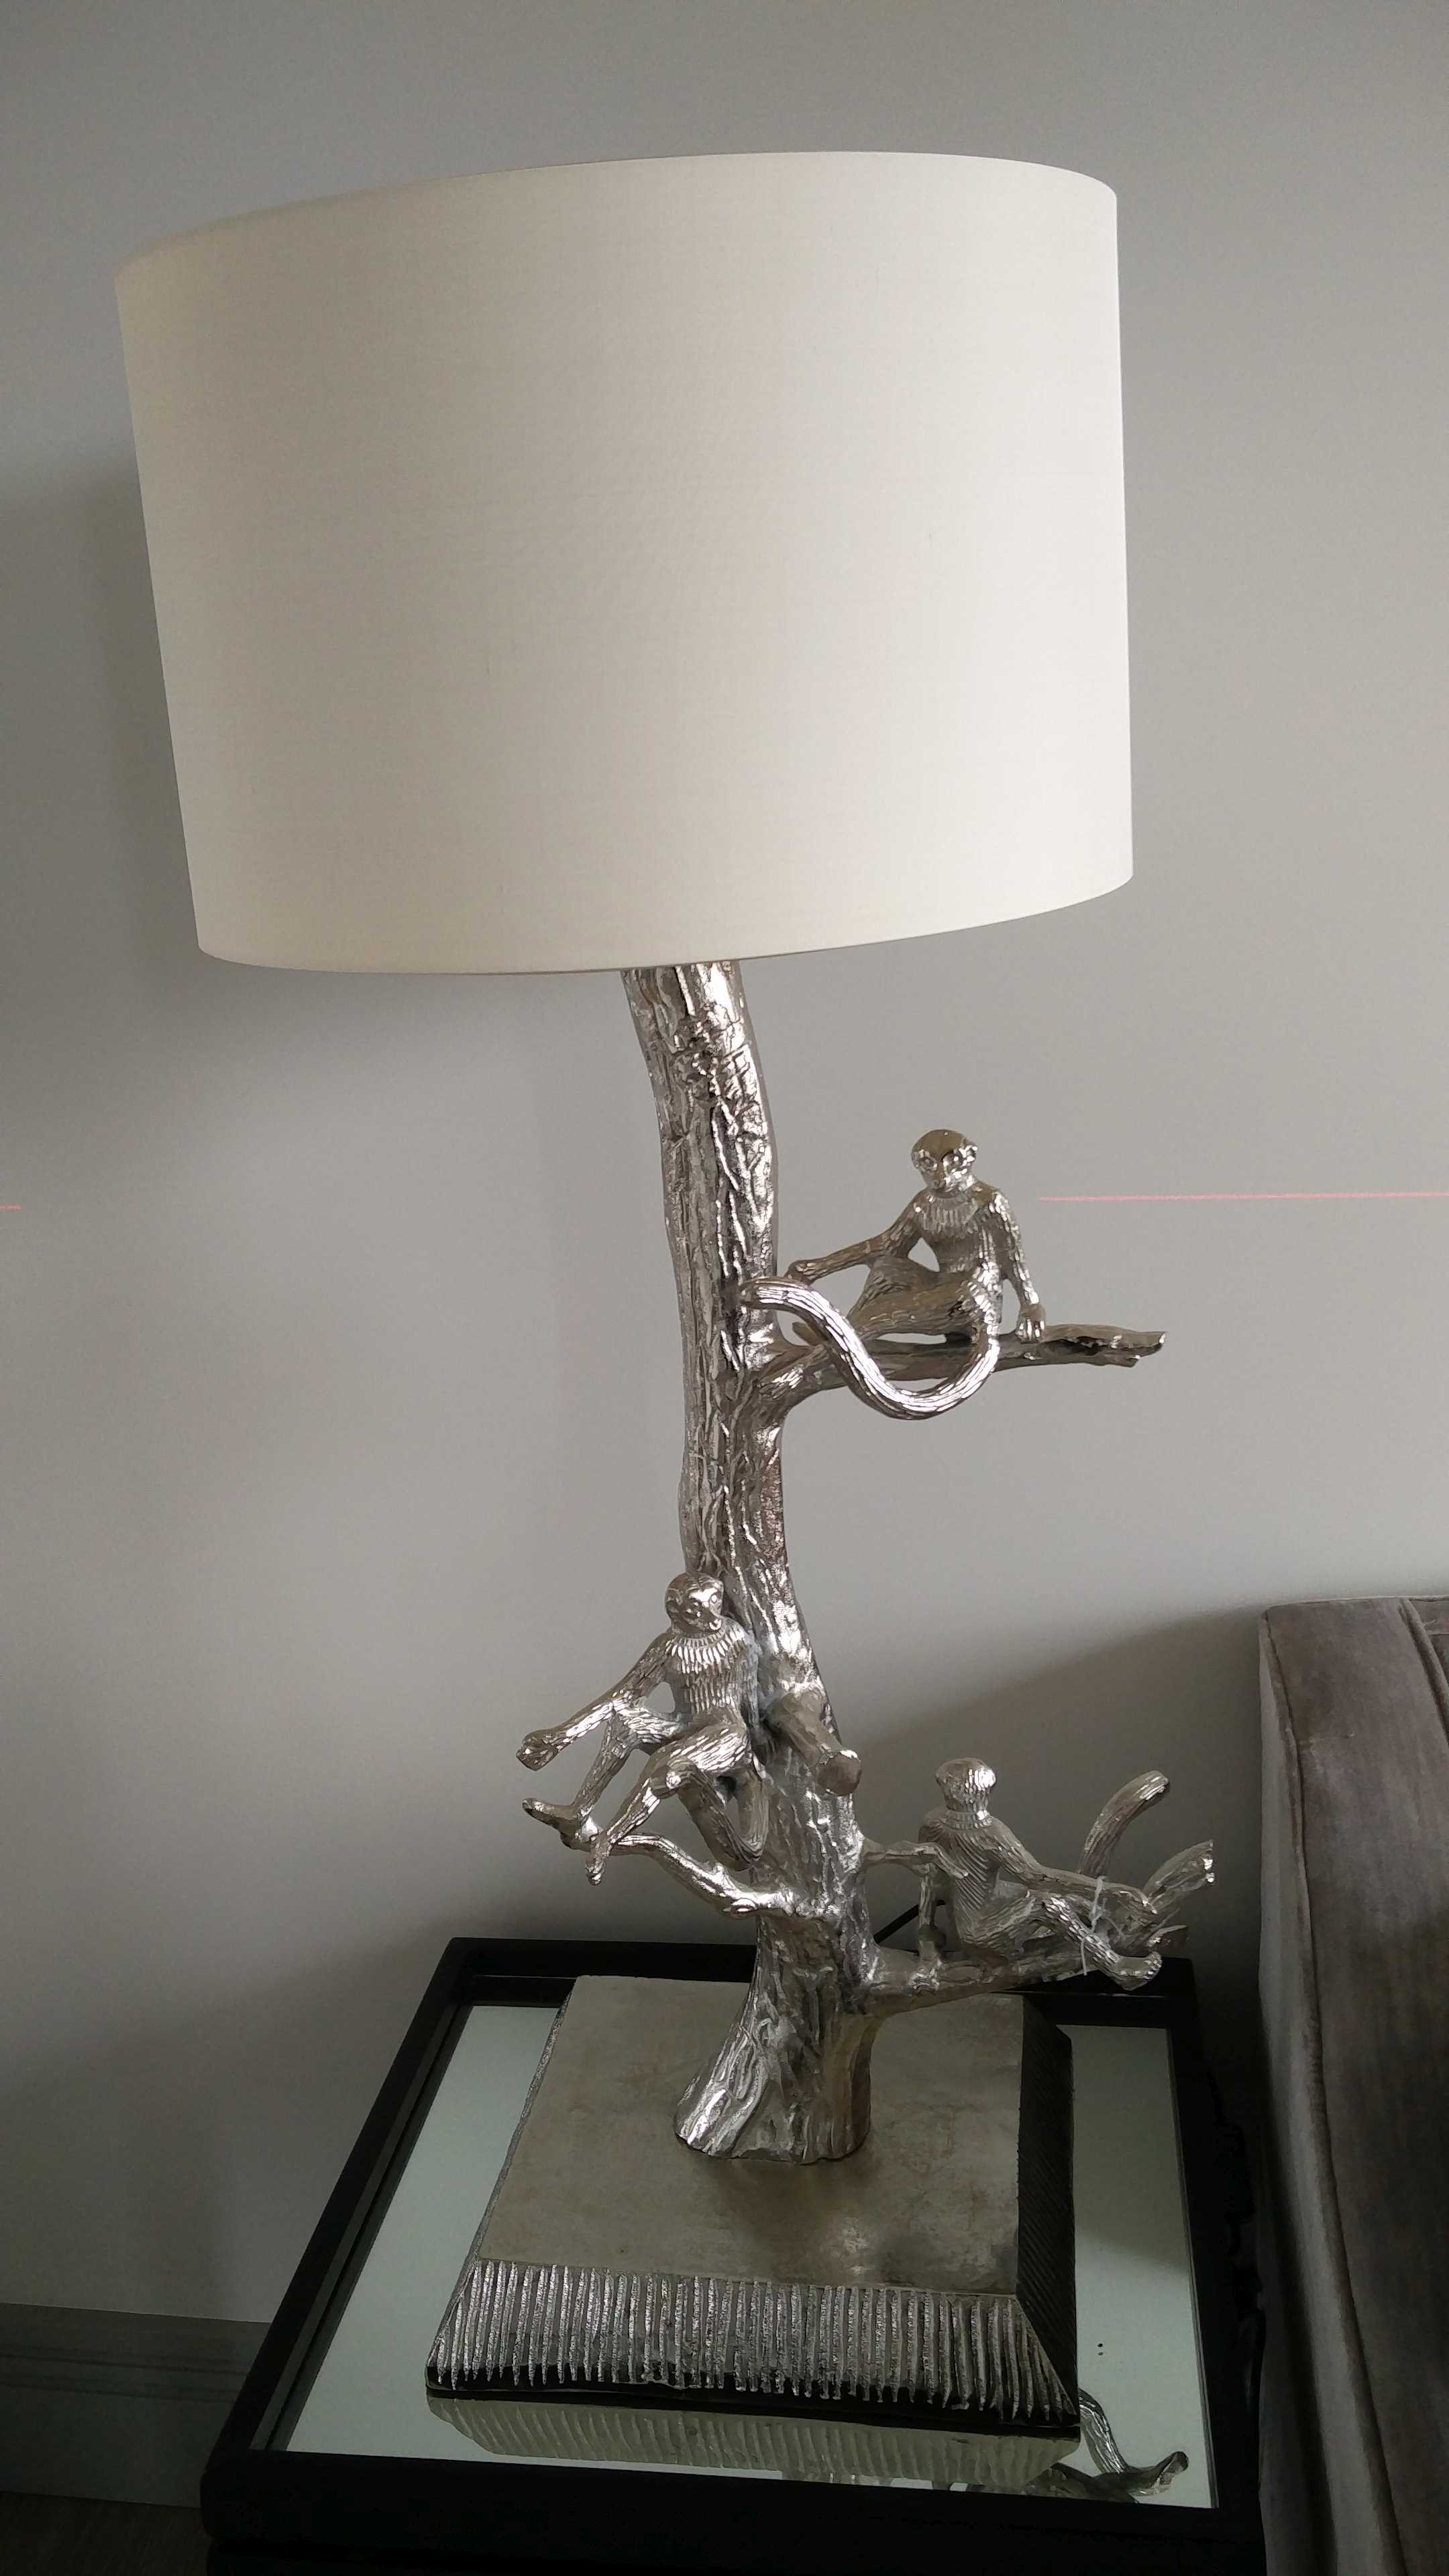 monkey lamp - final touches